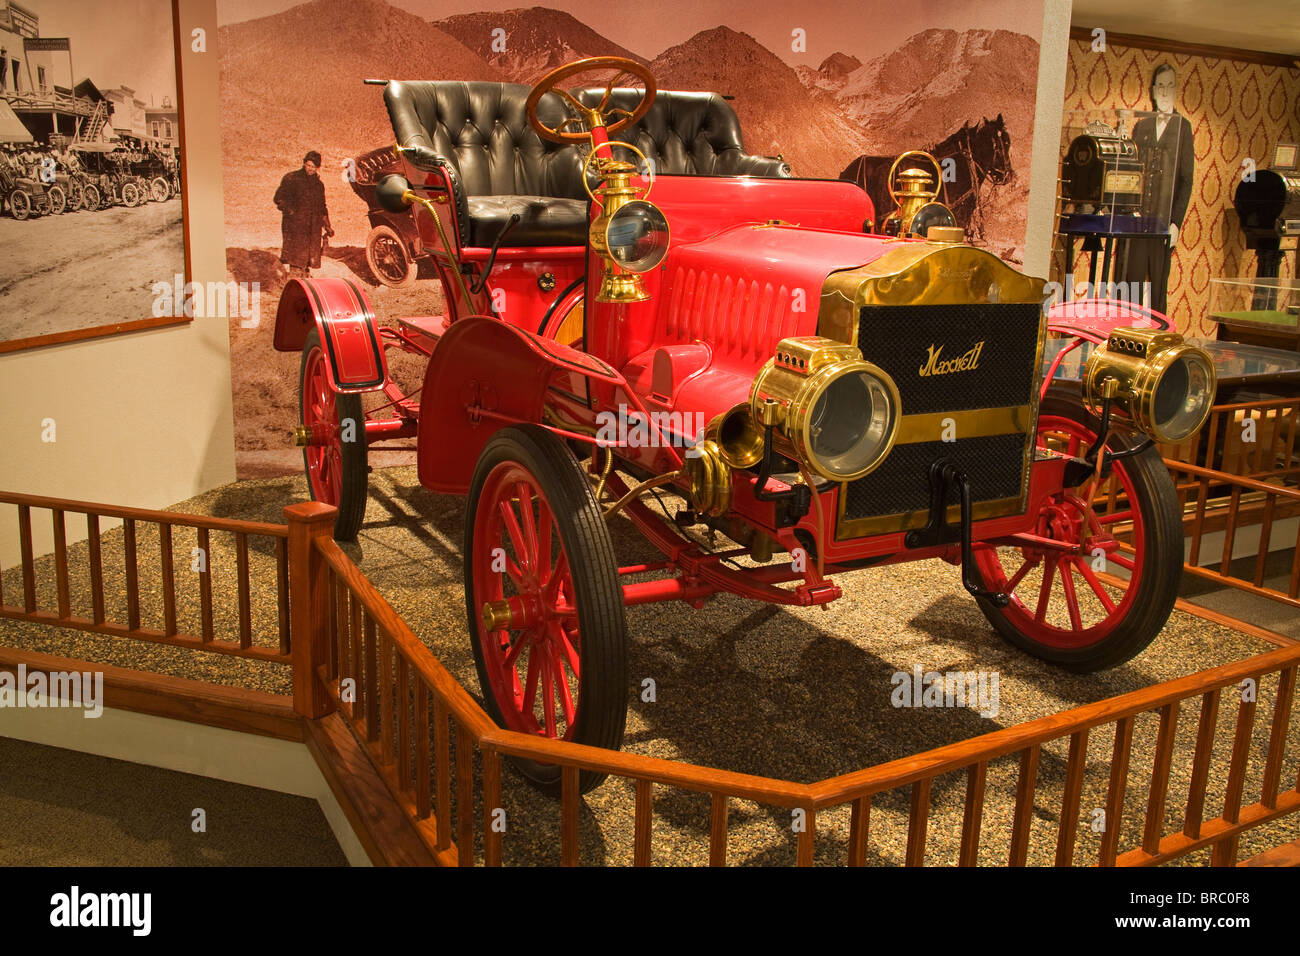 Automobile at the Nevada State Museum, Carson City, Nevada, USA - Stock Image